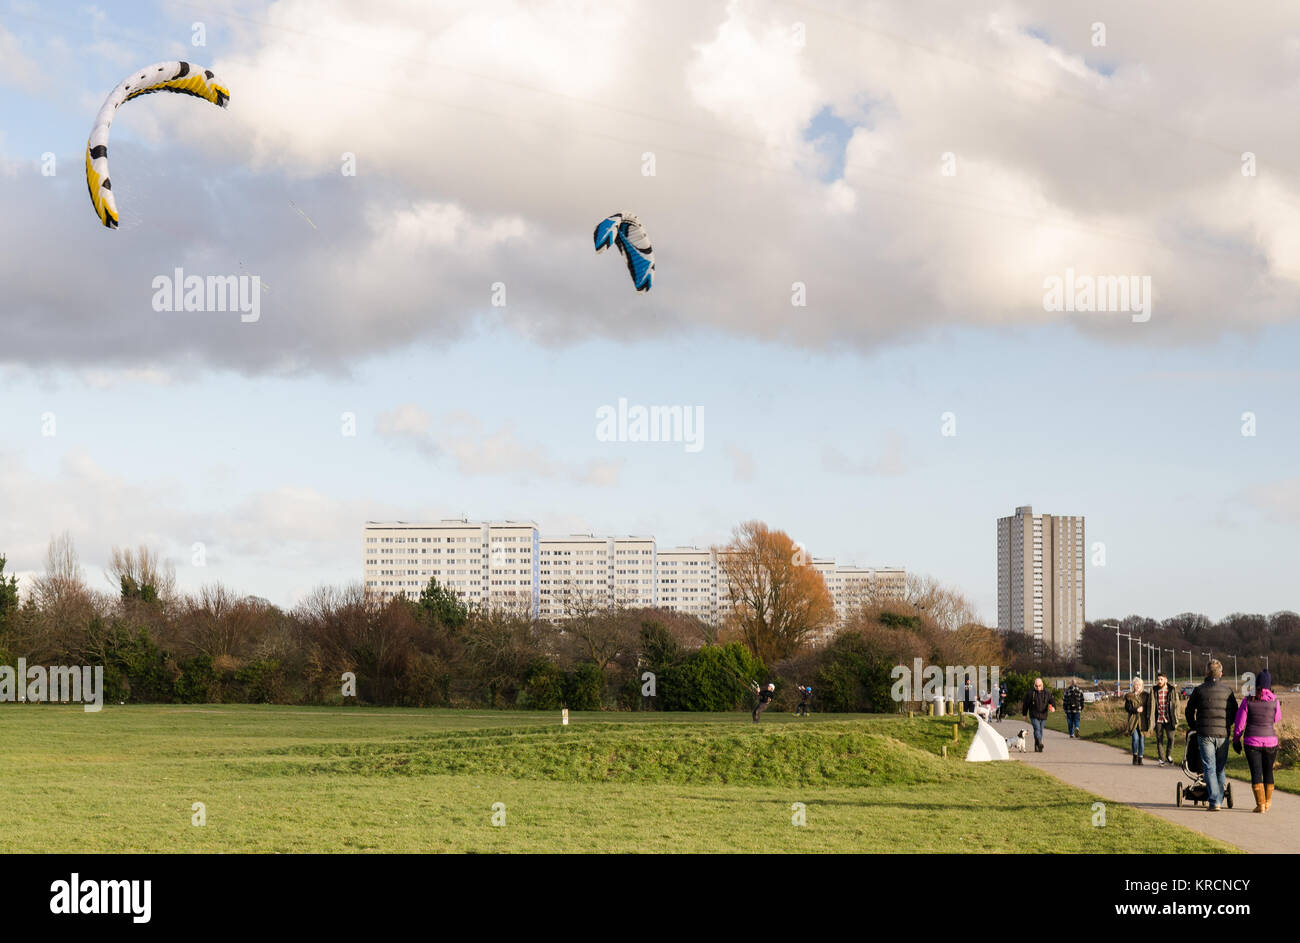 Southampton, England, UK - February 16, 2014: People participate in kite landboarding on a sunny day in a park at Stock Photo